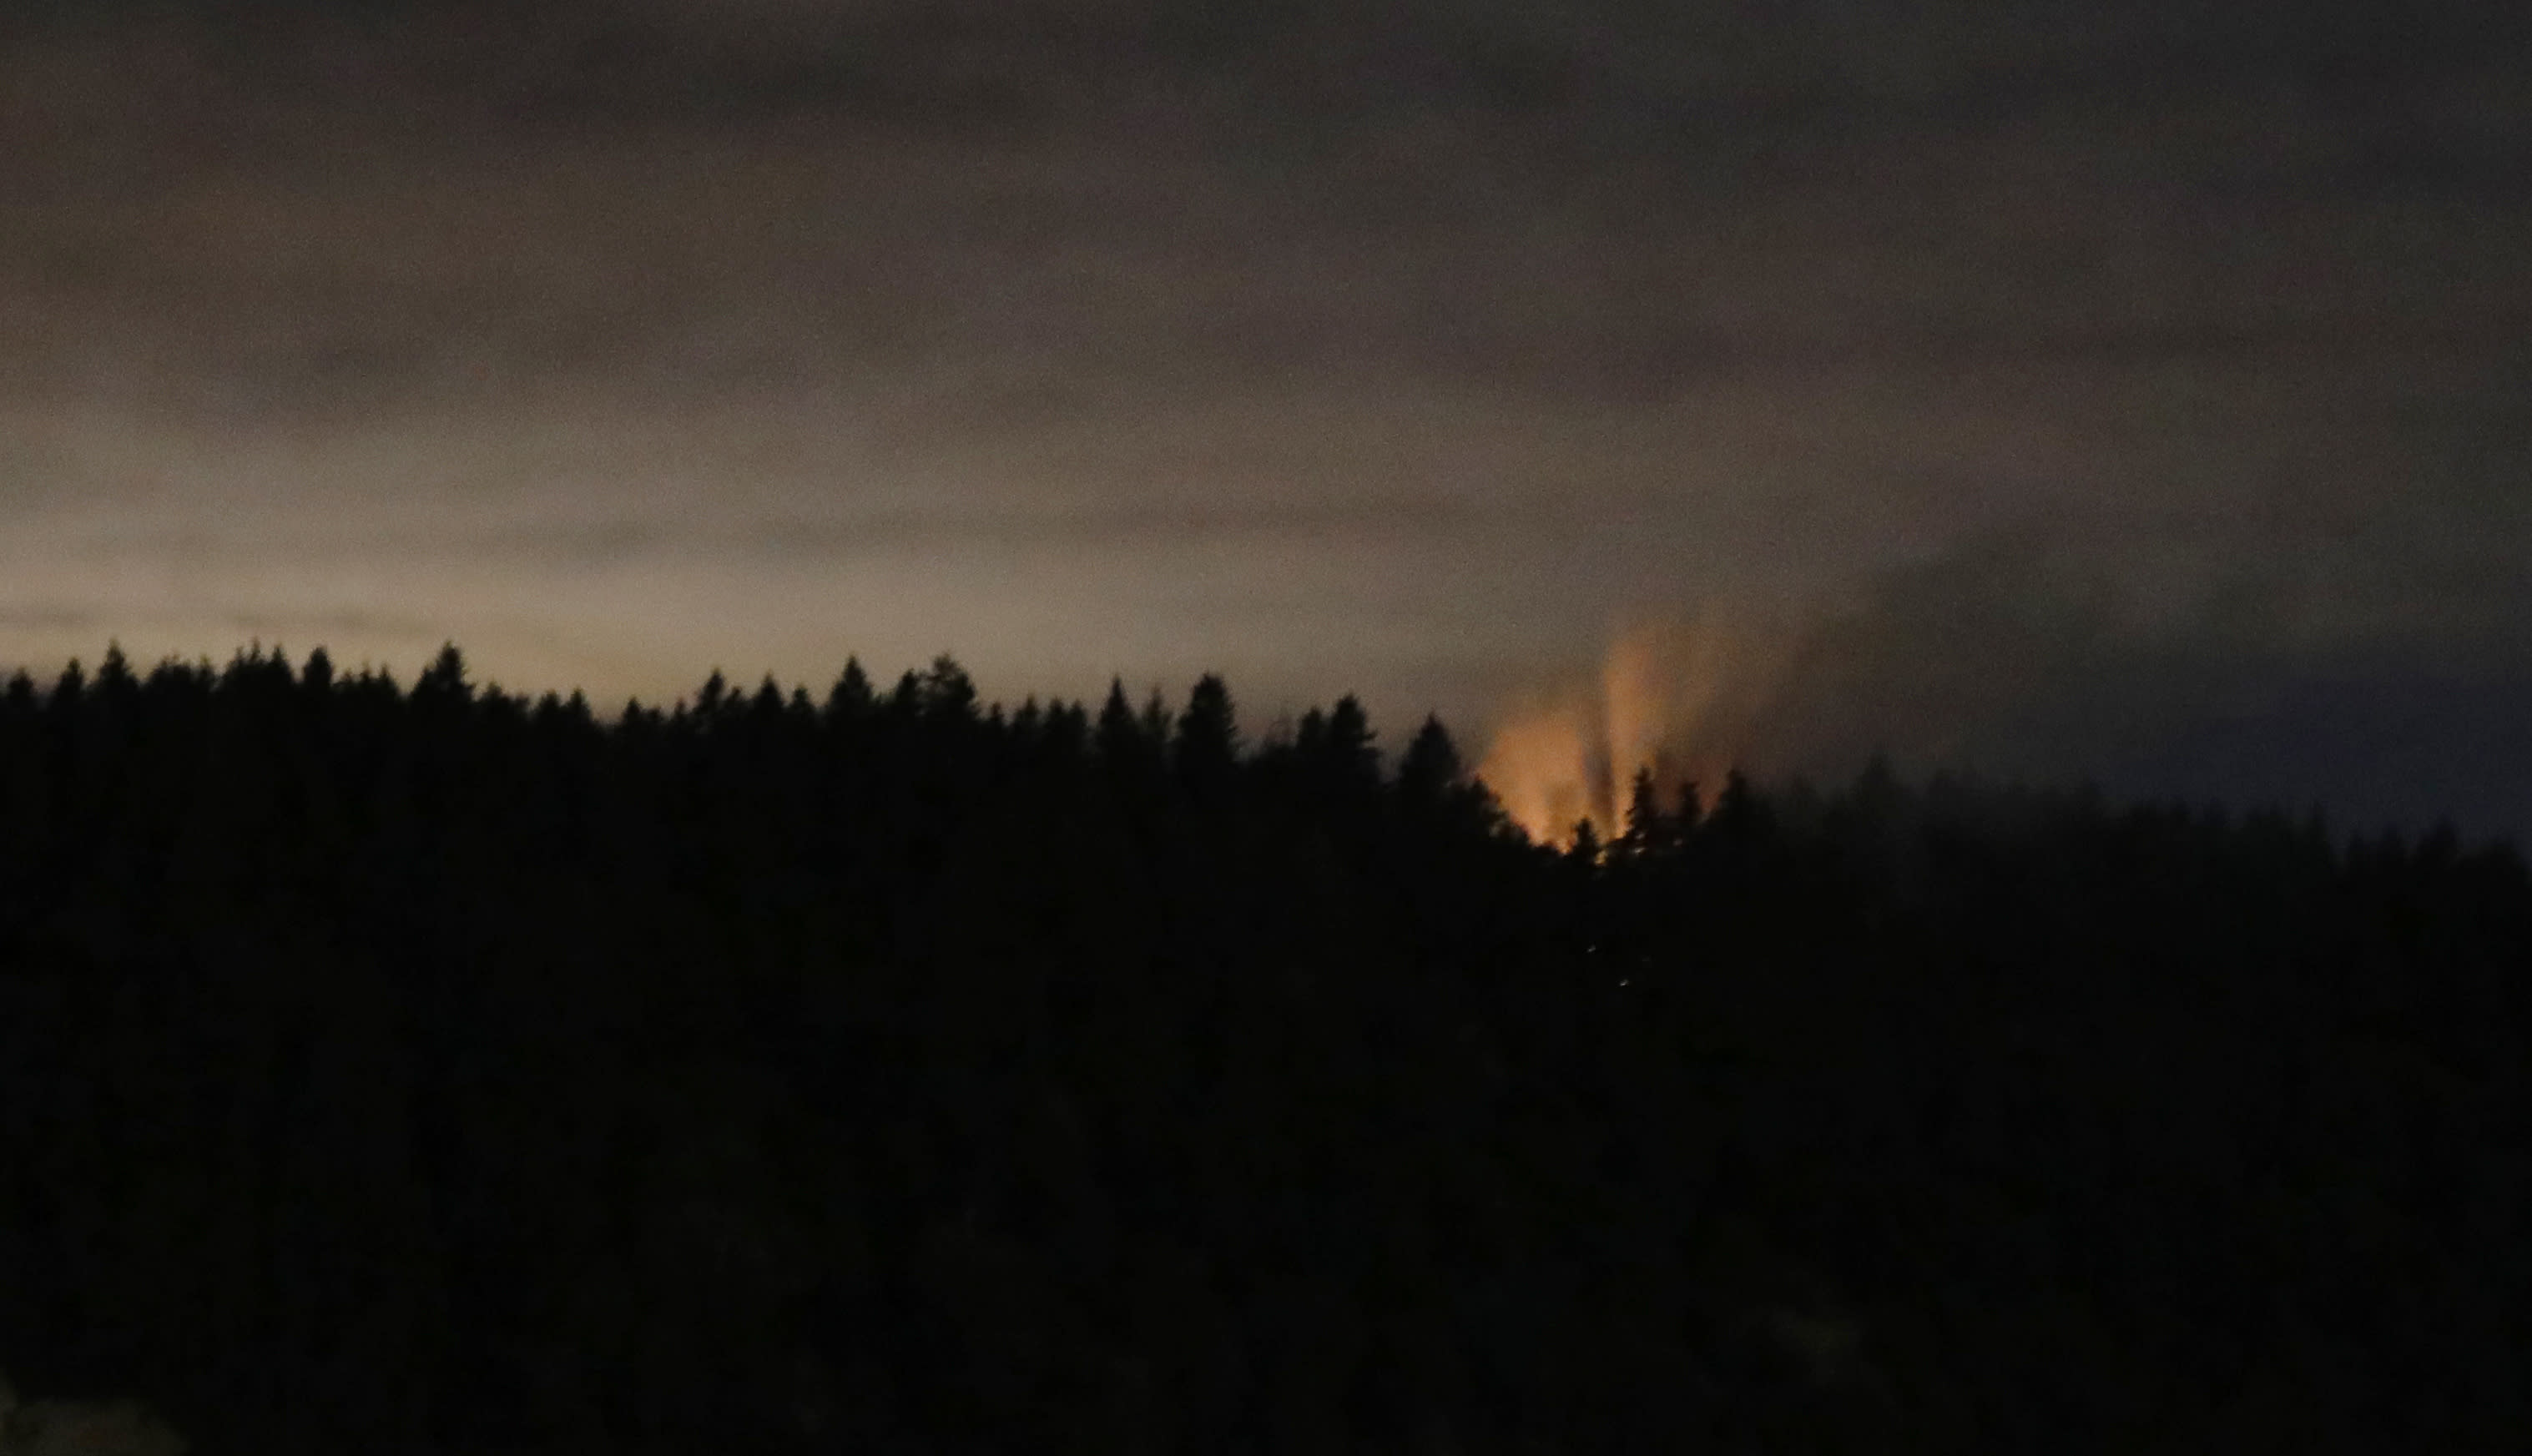 In this long-exposure photo, smoke and an orange glow are seen on Ketron Island in Washington state, early Saturday, Aug. 11, 2018 as viewed from near Steilacoom, Wash. On Friday, an airline mechanic stole an empty Horizon Air turboprop plane, took off from Seattle-Tacoma International Airport and was chased by military jets before crashing onto Ketron, a small island in the Puget Sound, on Friday night, officials said. (AP Photo/Ted S. Warren)